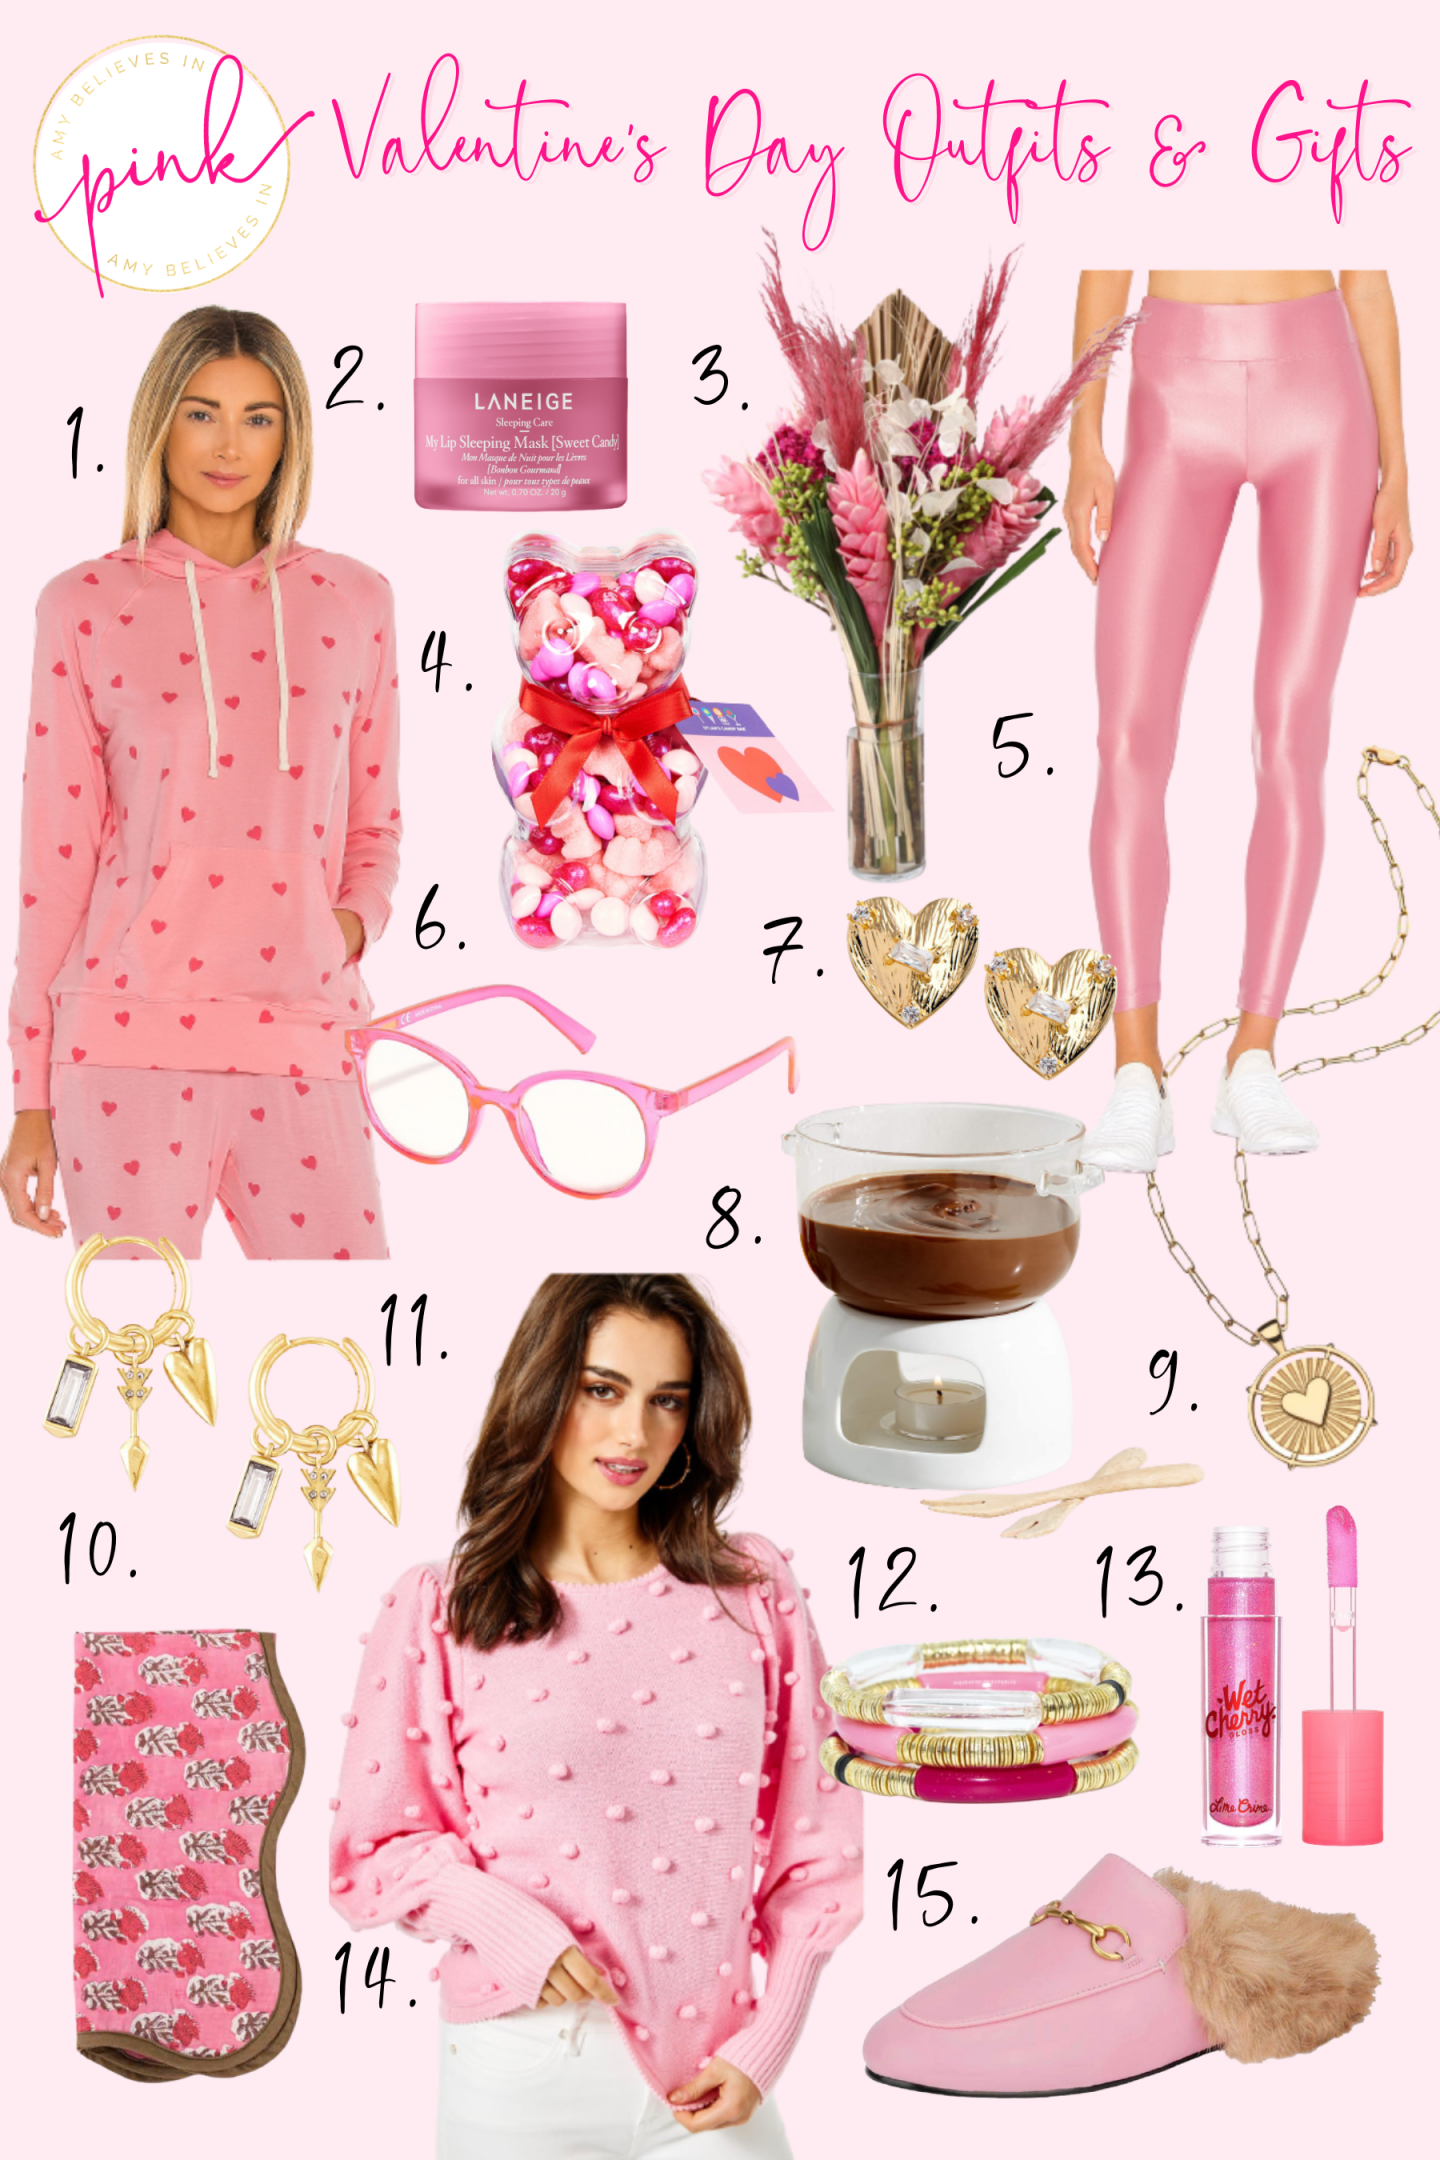 Valentine's Day 2021 Outfit & Gift Ideas